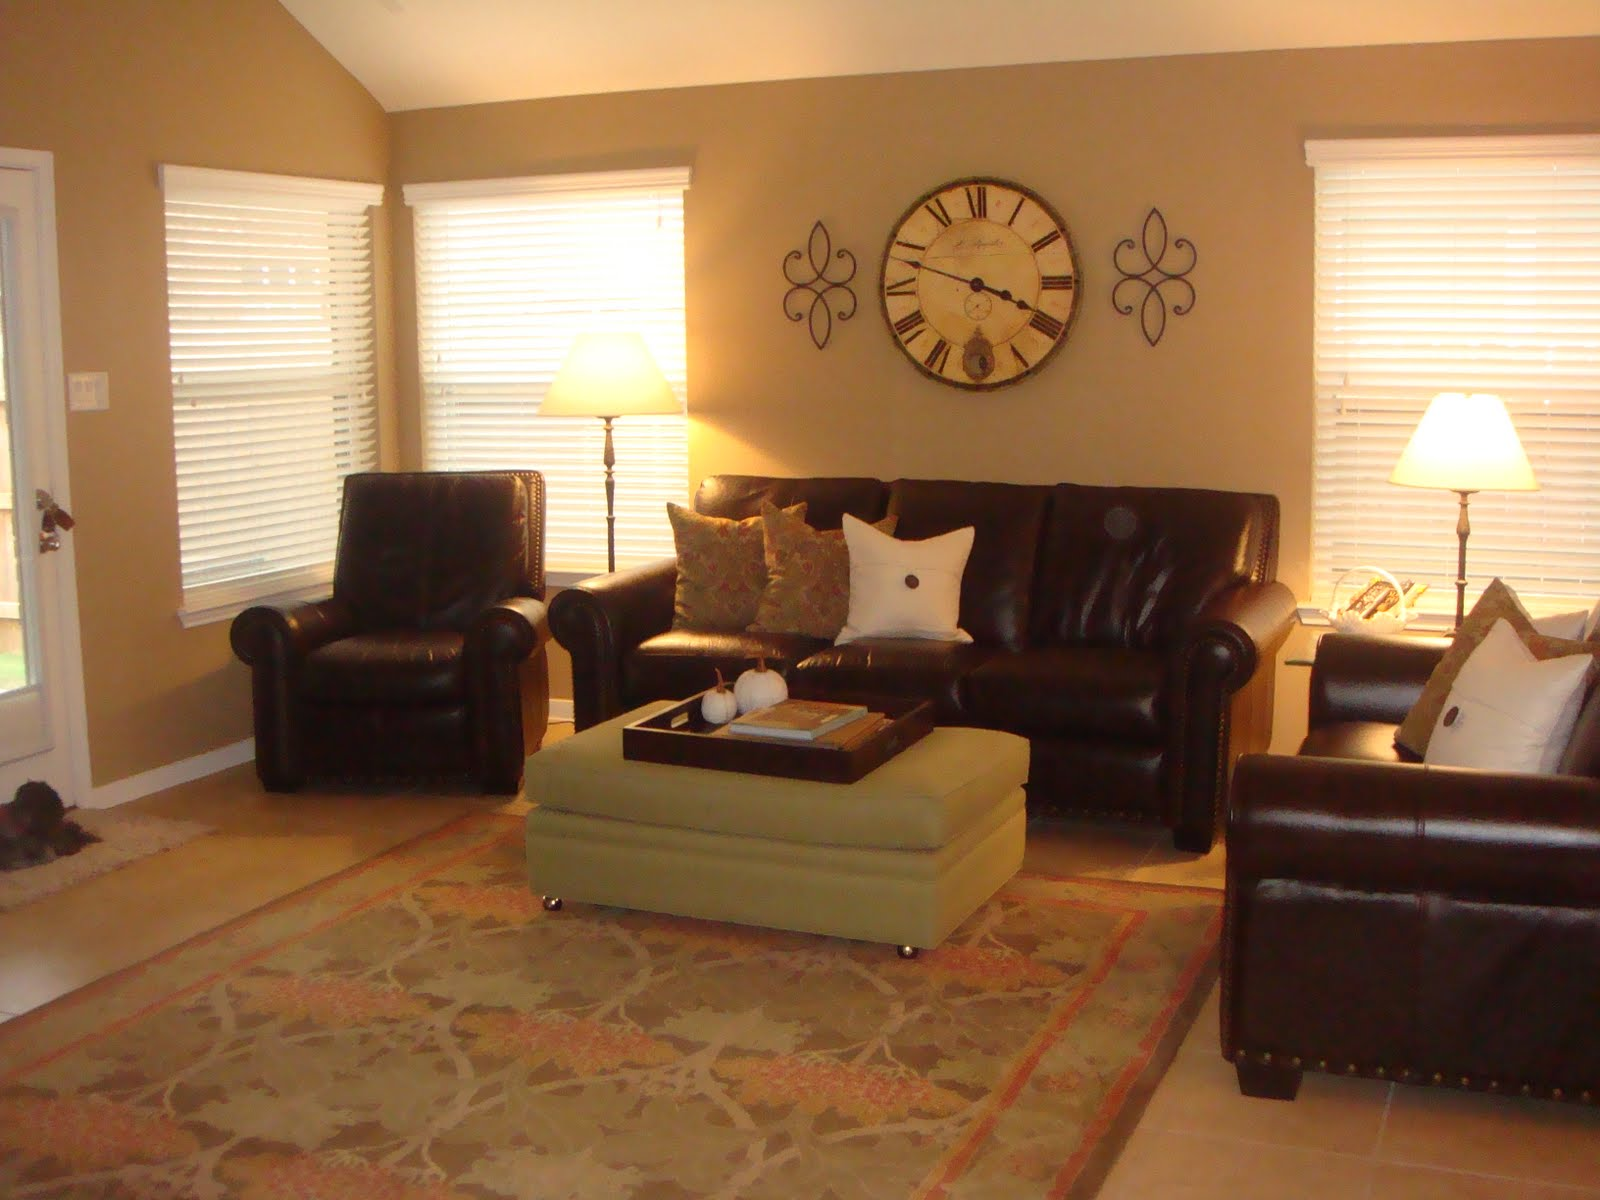 Sitting shotgun home updates - Paint colors for living room and kitchen ...